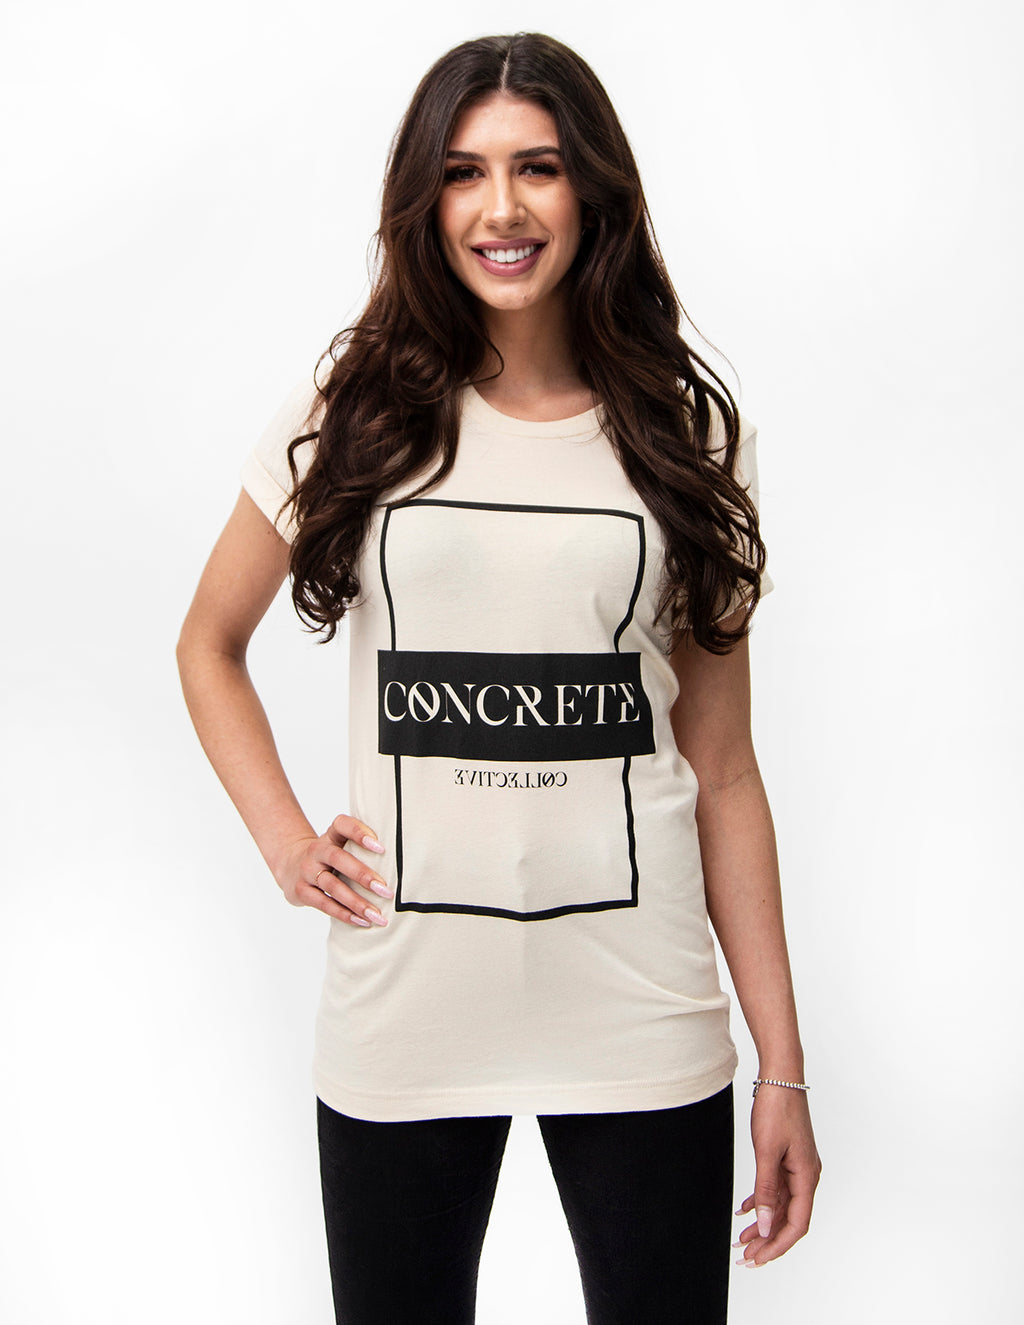 Stone Tablet Tee - Cream